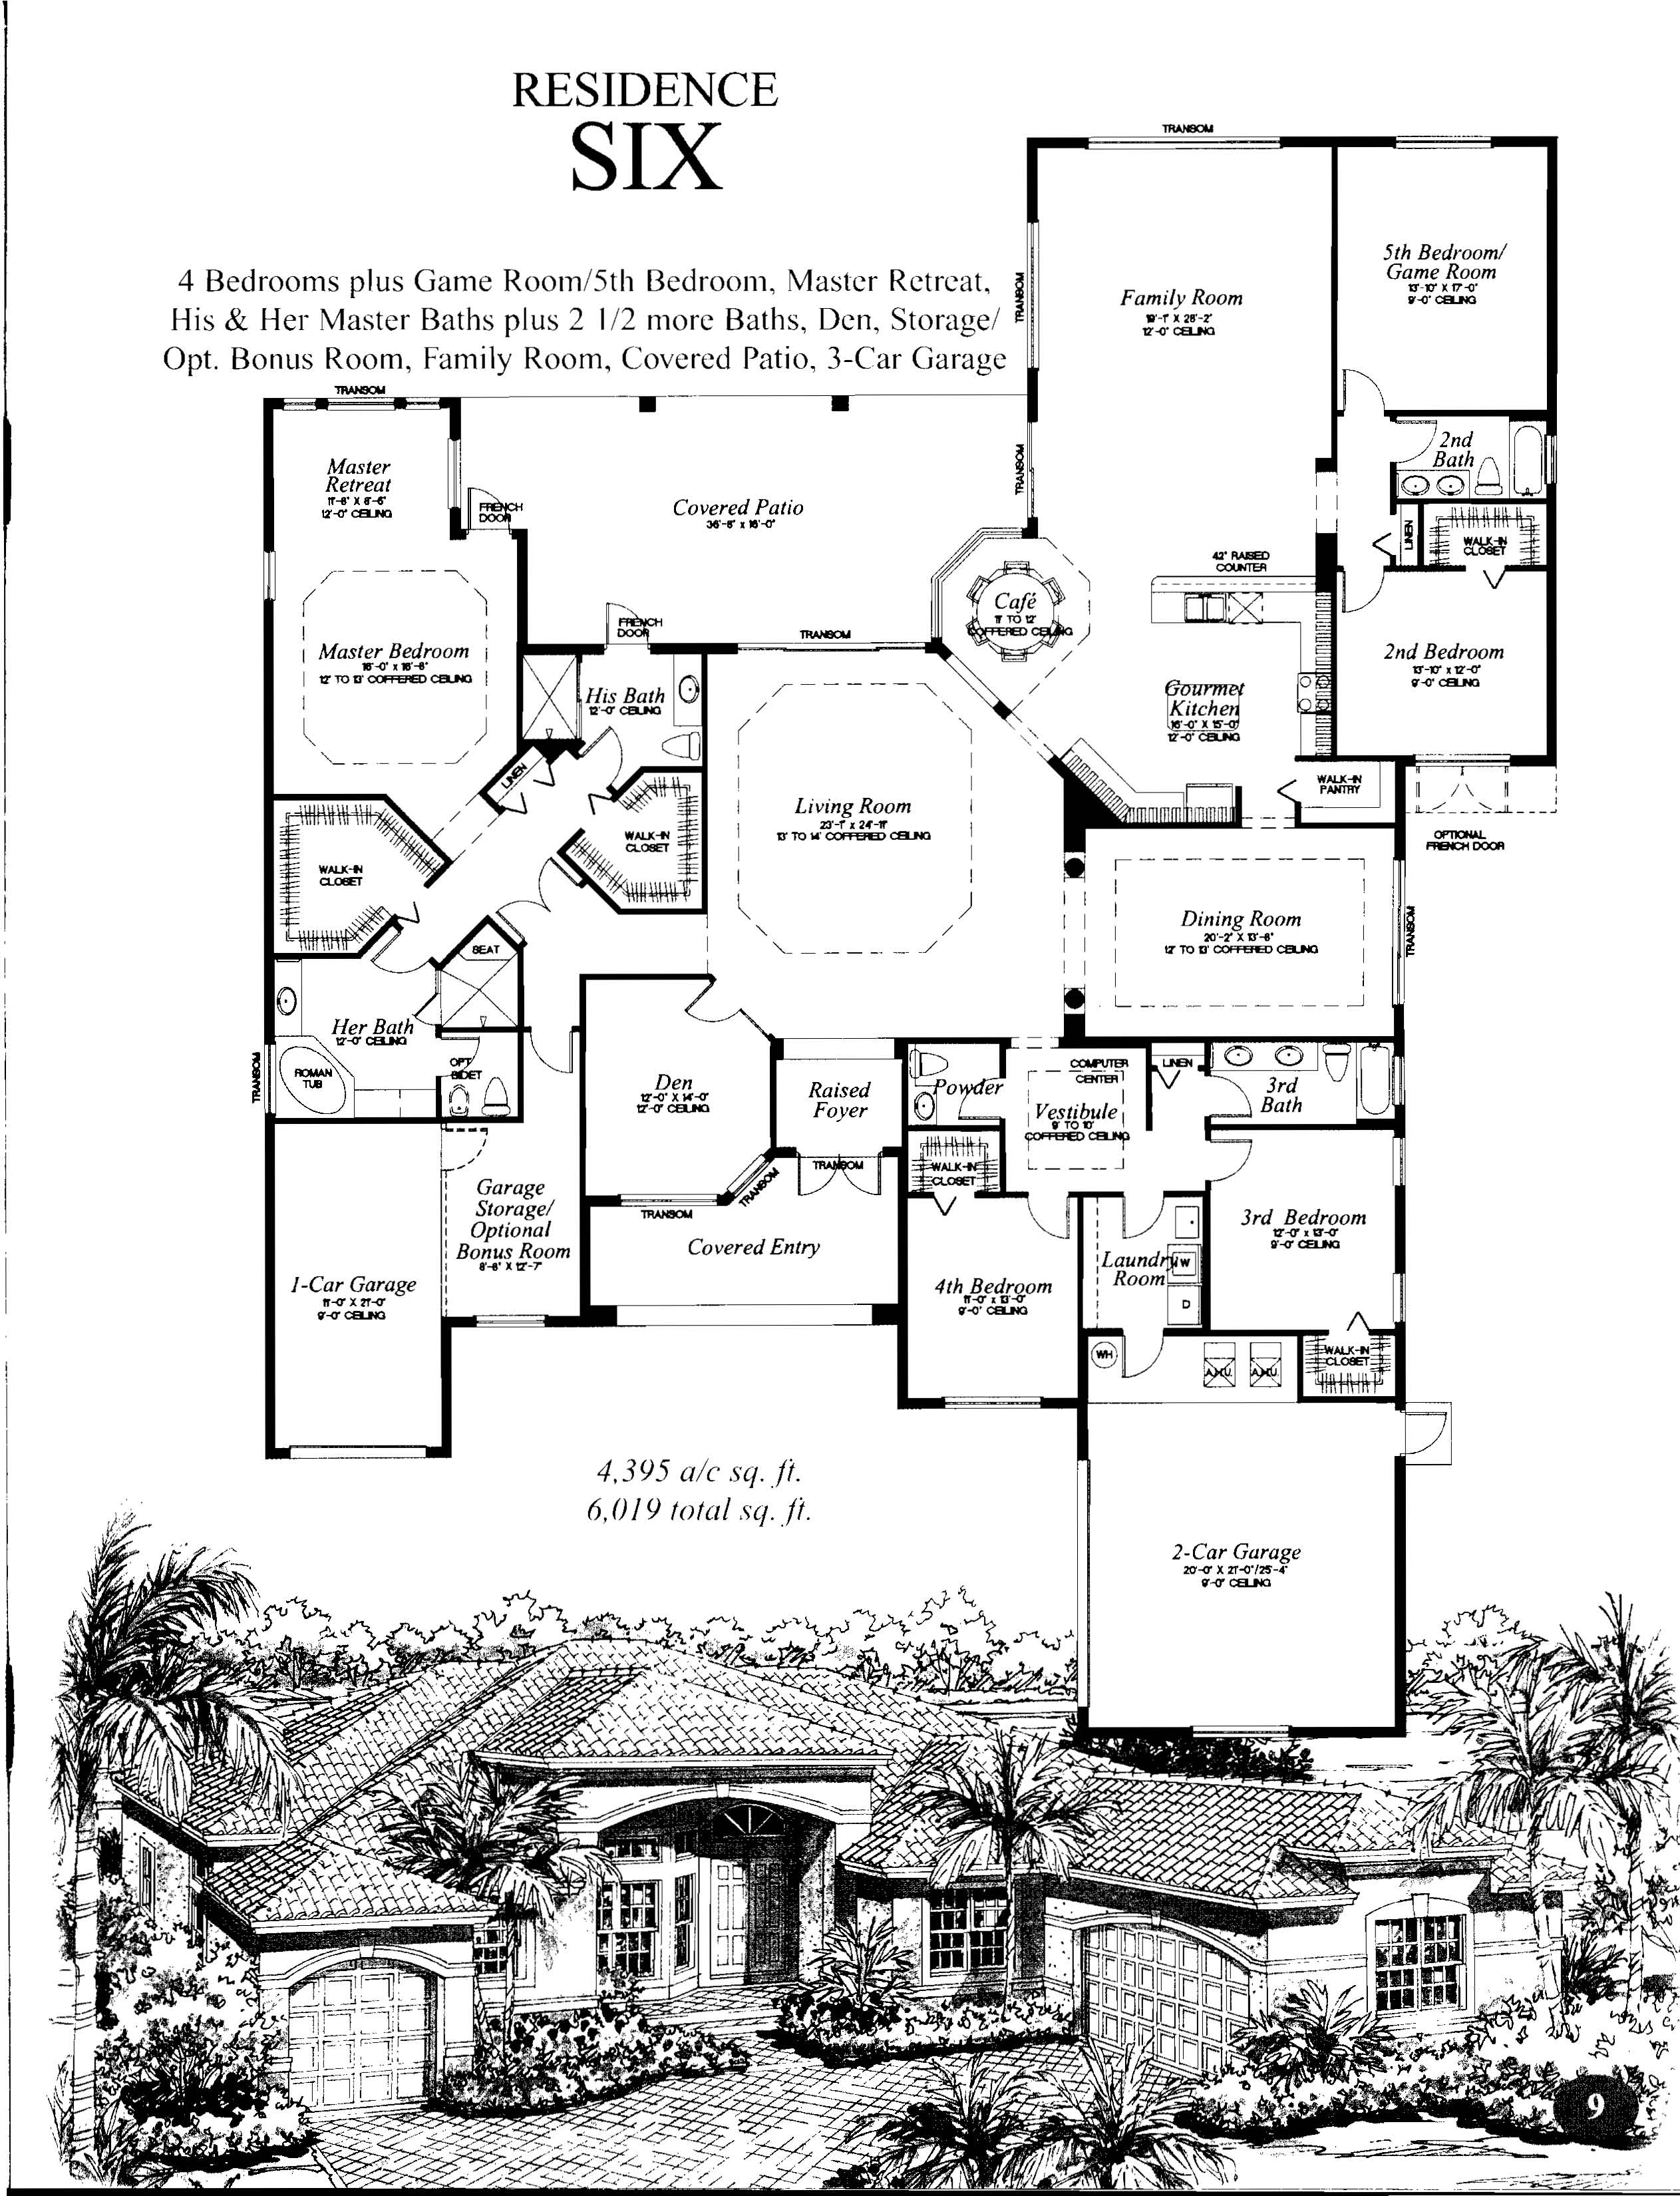 riverstone floor plans and community profile riverstone in residence six